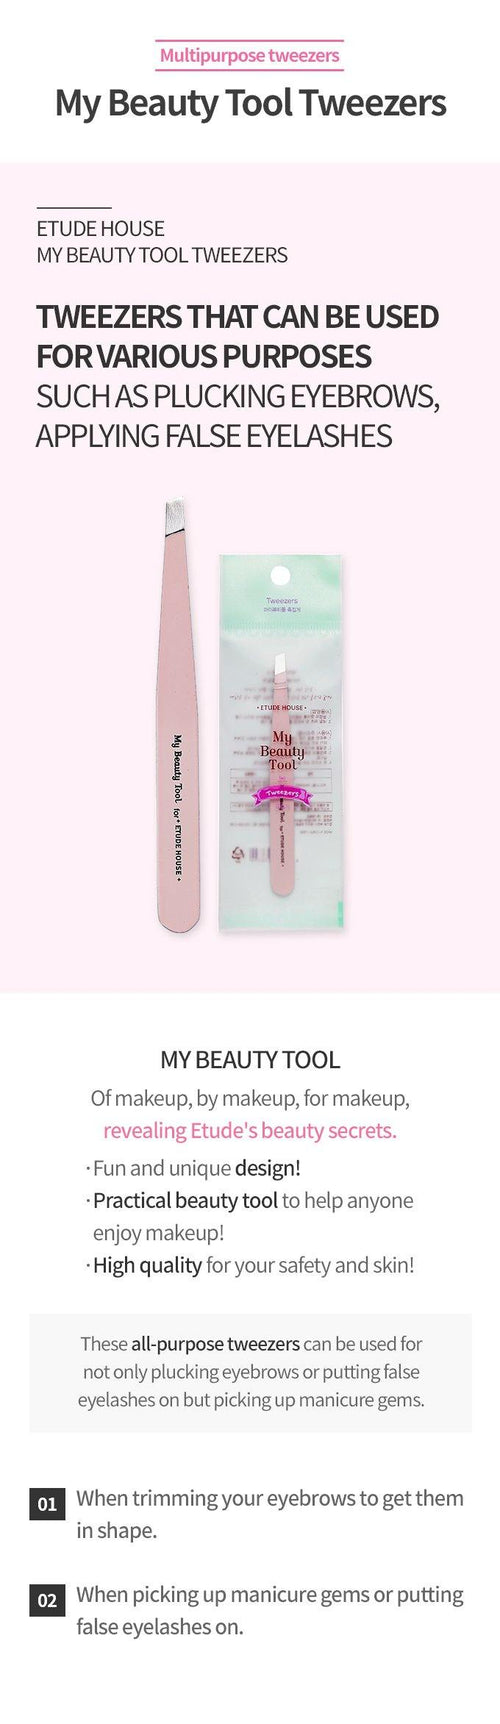 Etude House My Beauty Tool Tweezers - Olive Kollection